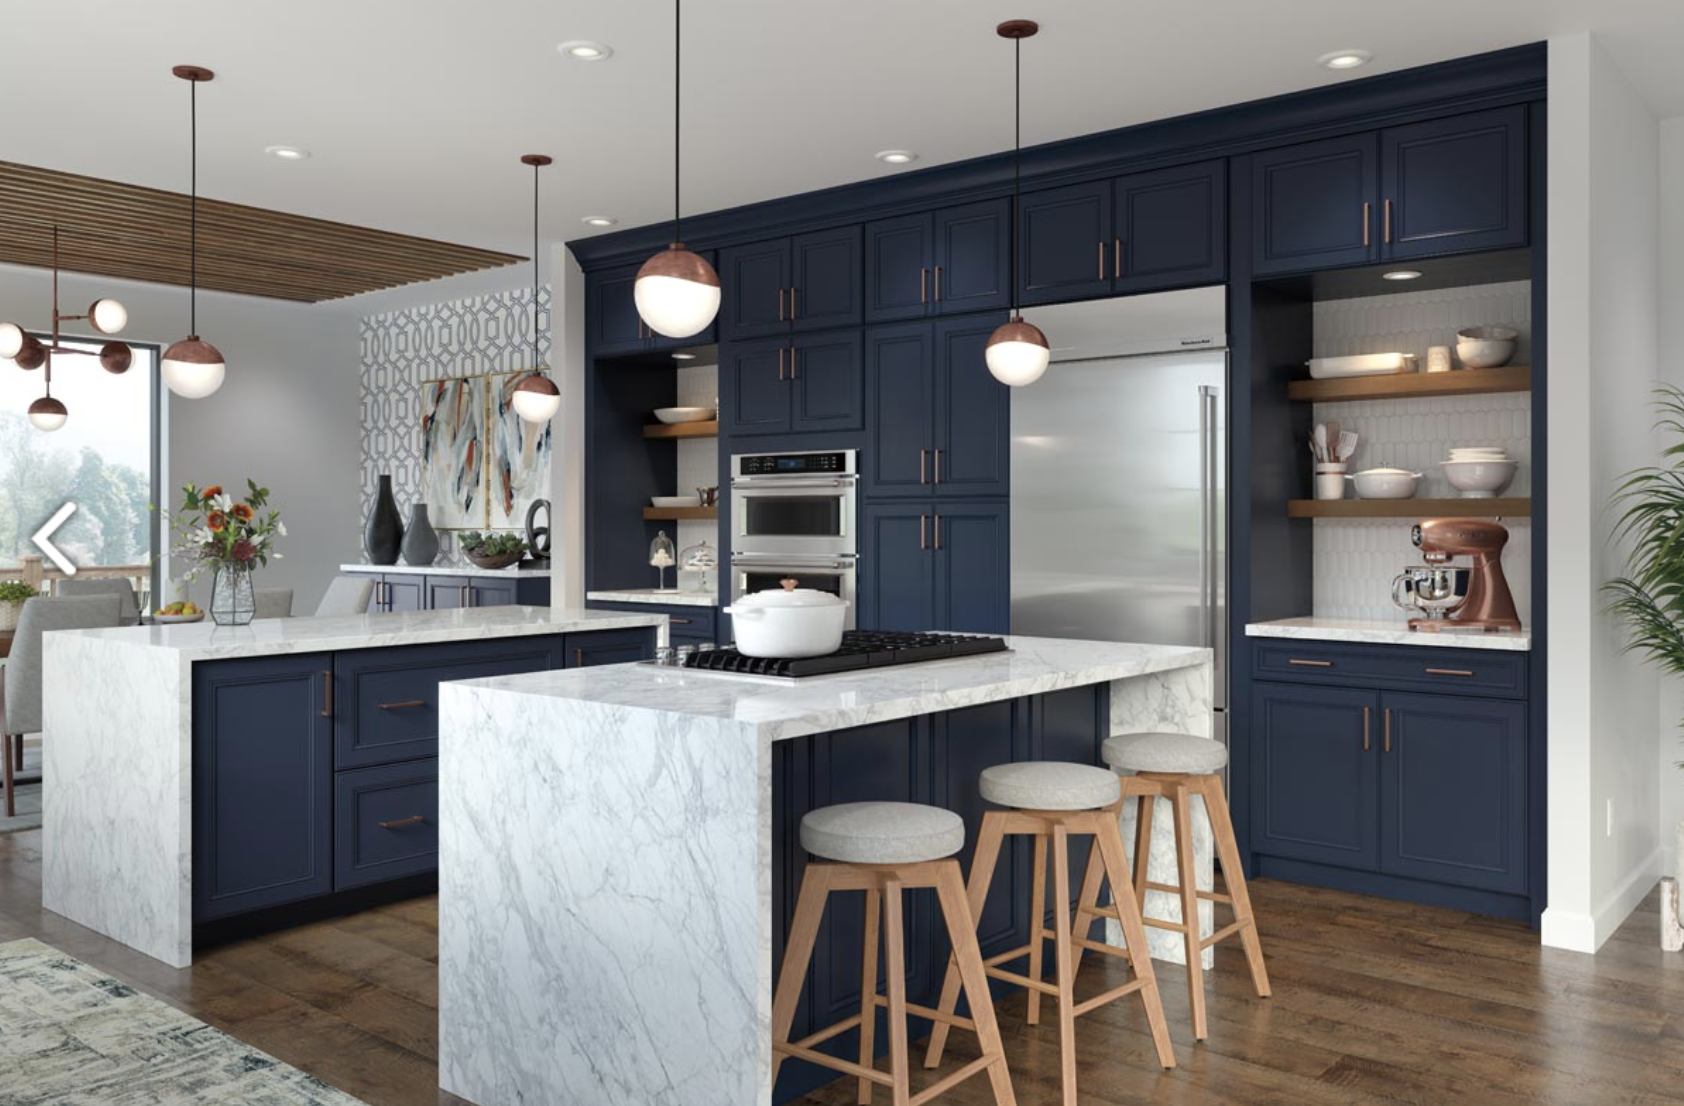 Waypoint Living Spaces Cabinetry for kitchen redesign, Johnson Lumber, Maryland Kitchen Design